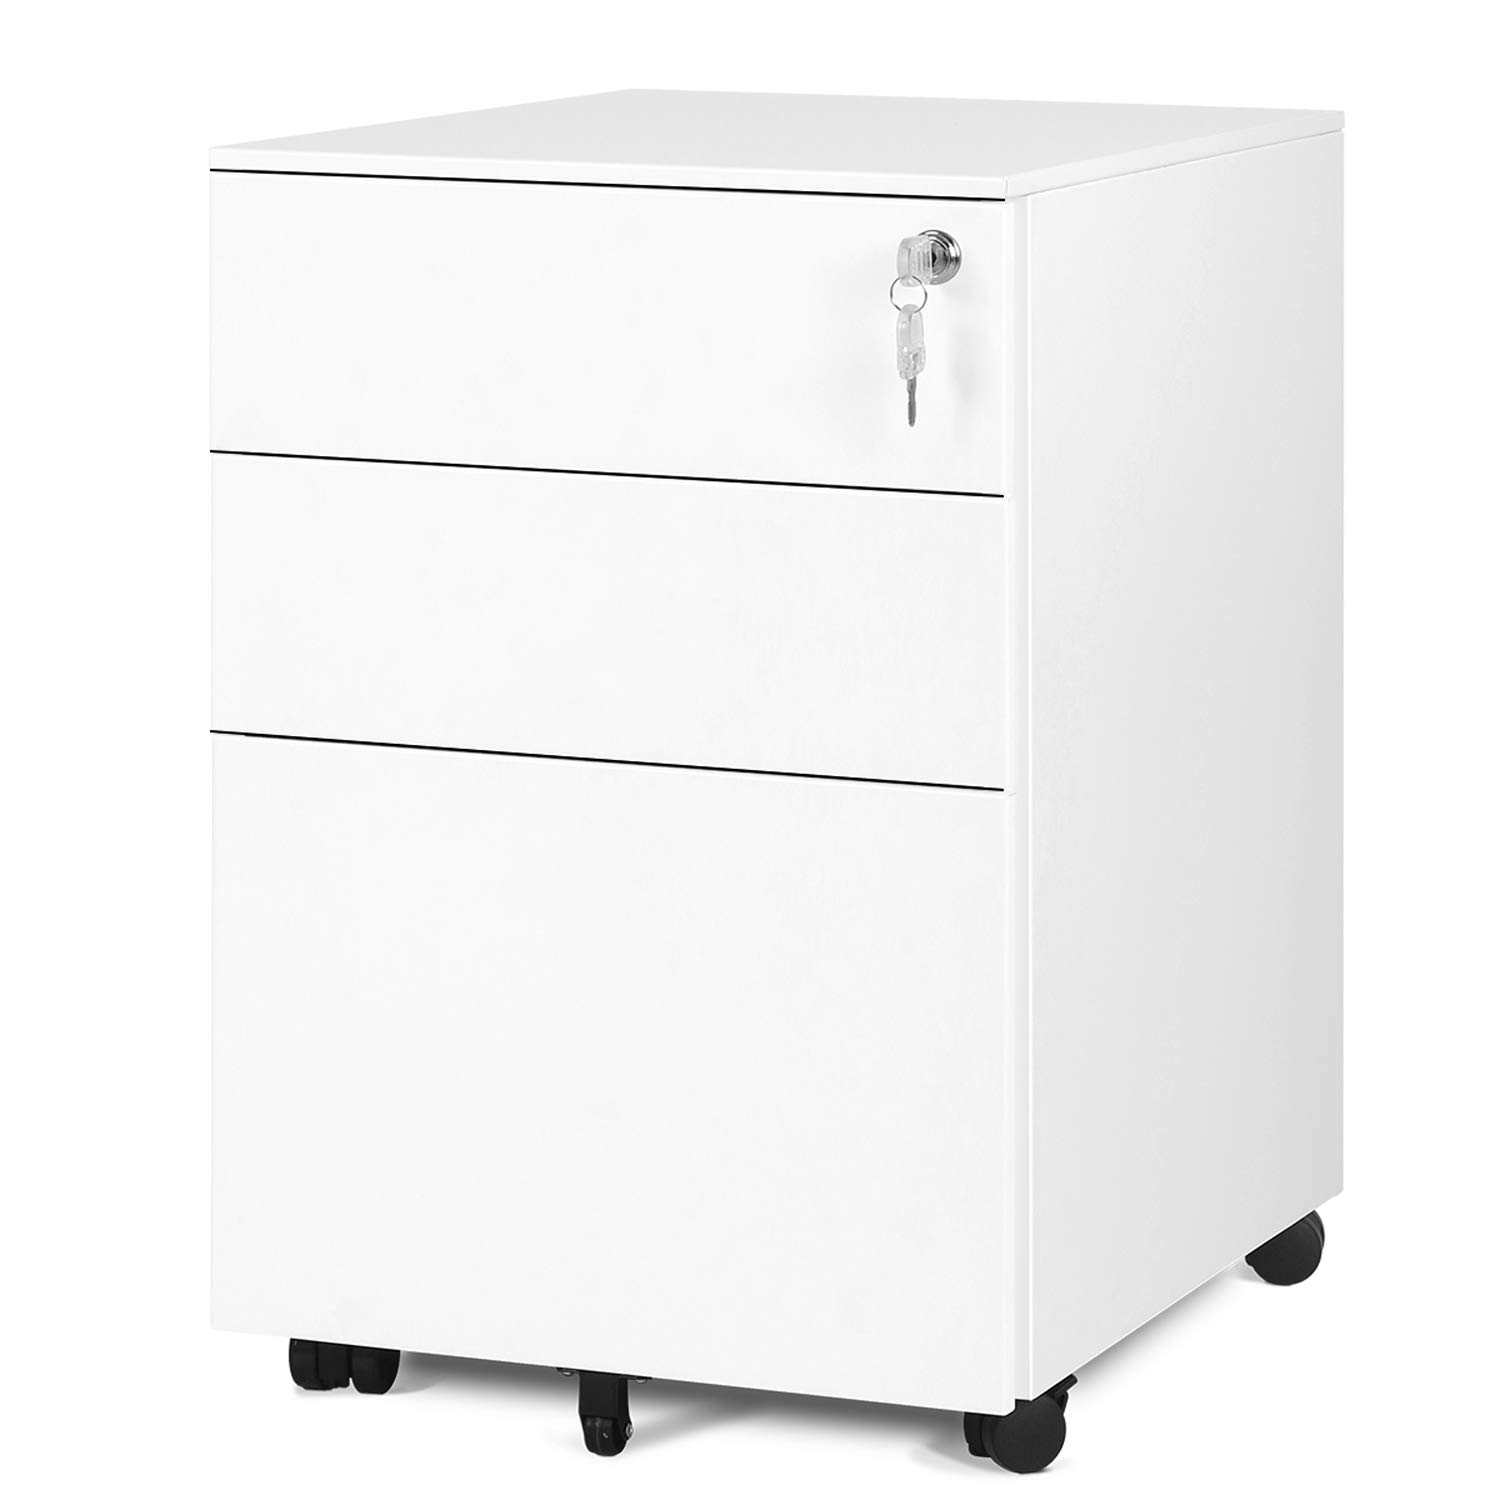 DEVAISE Locking File Cabinet, 3 Drawer Rolling Pedestal Cabinet, Fully Assembled Except Caster, White by DEVAISE